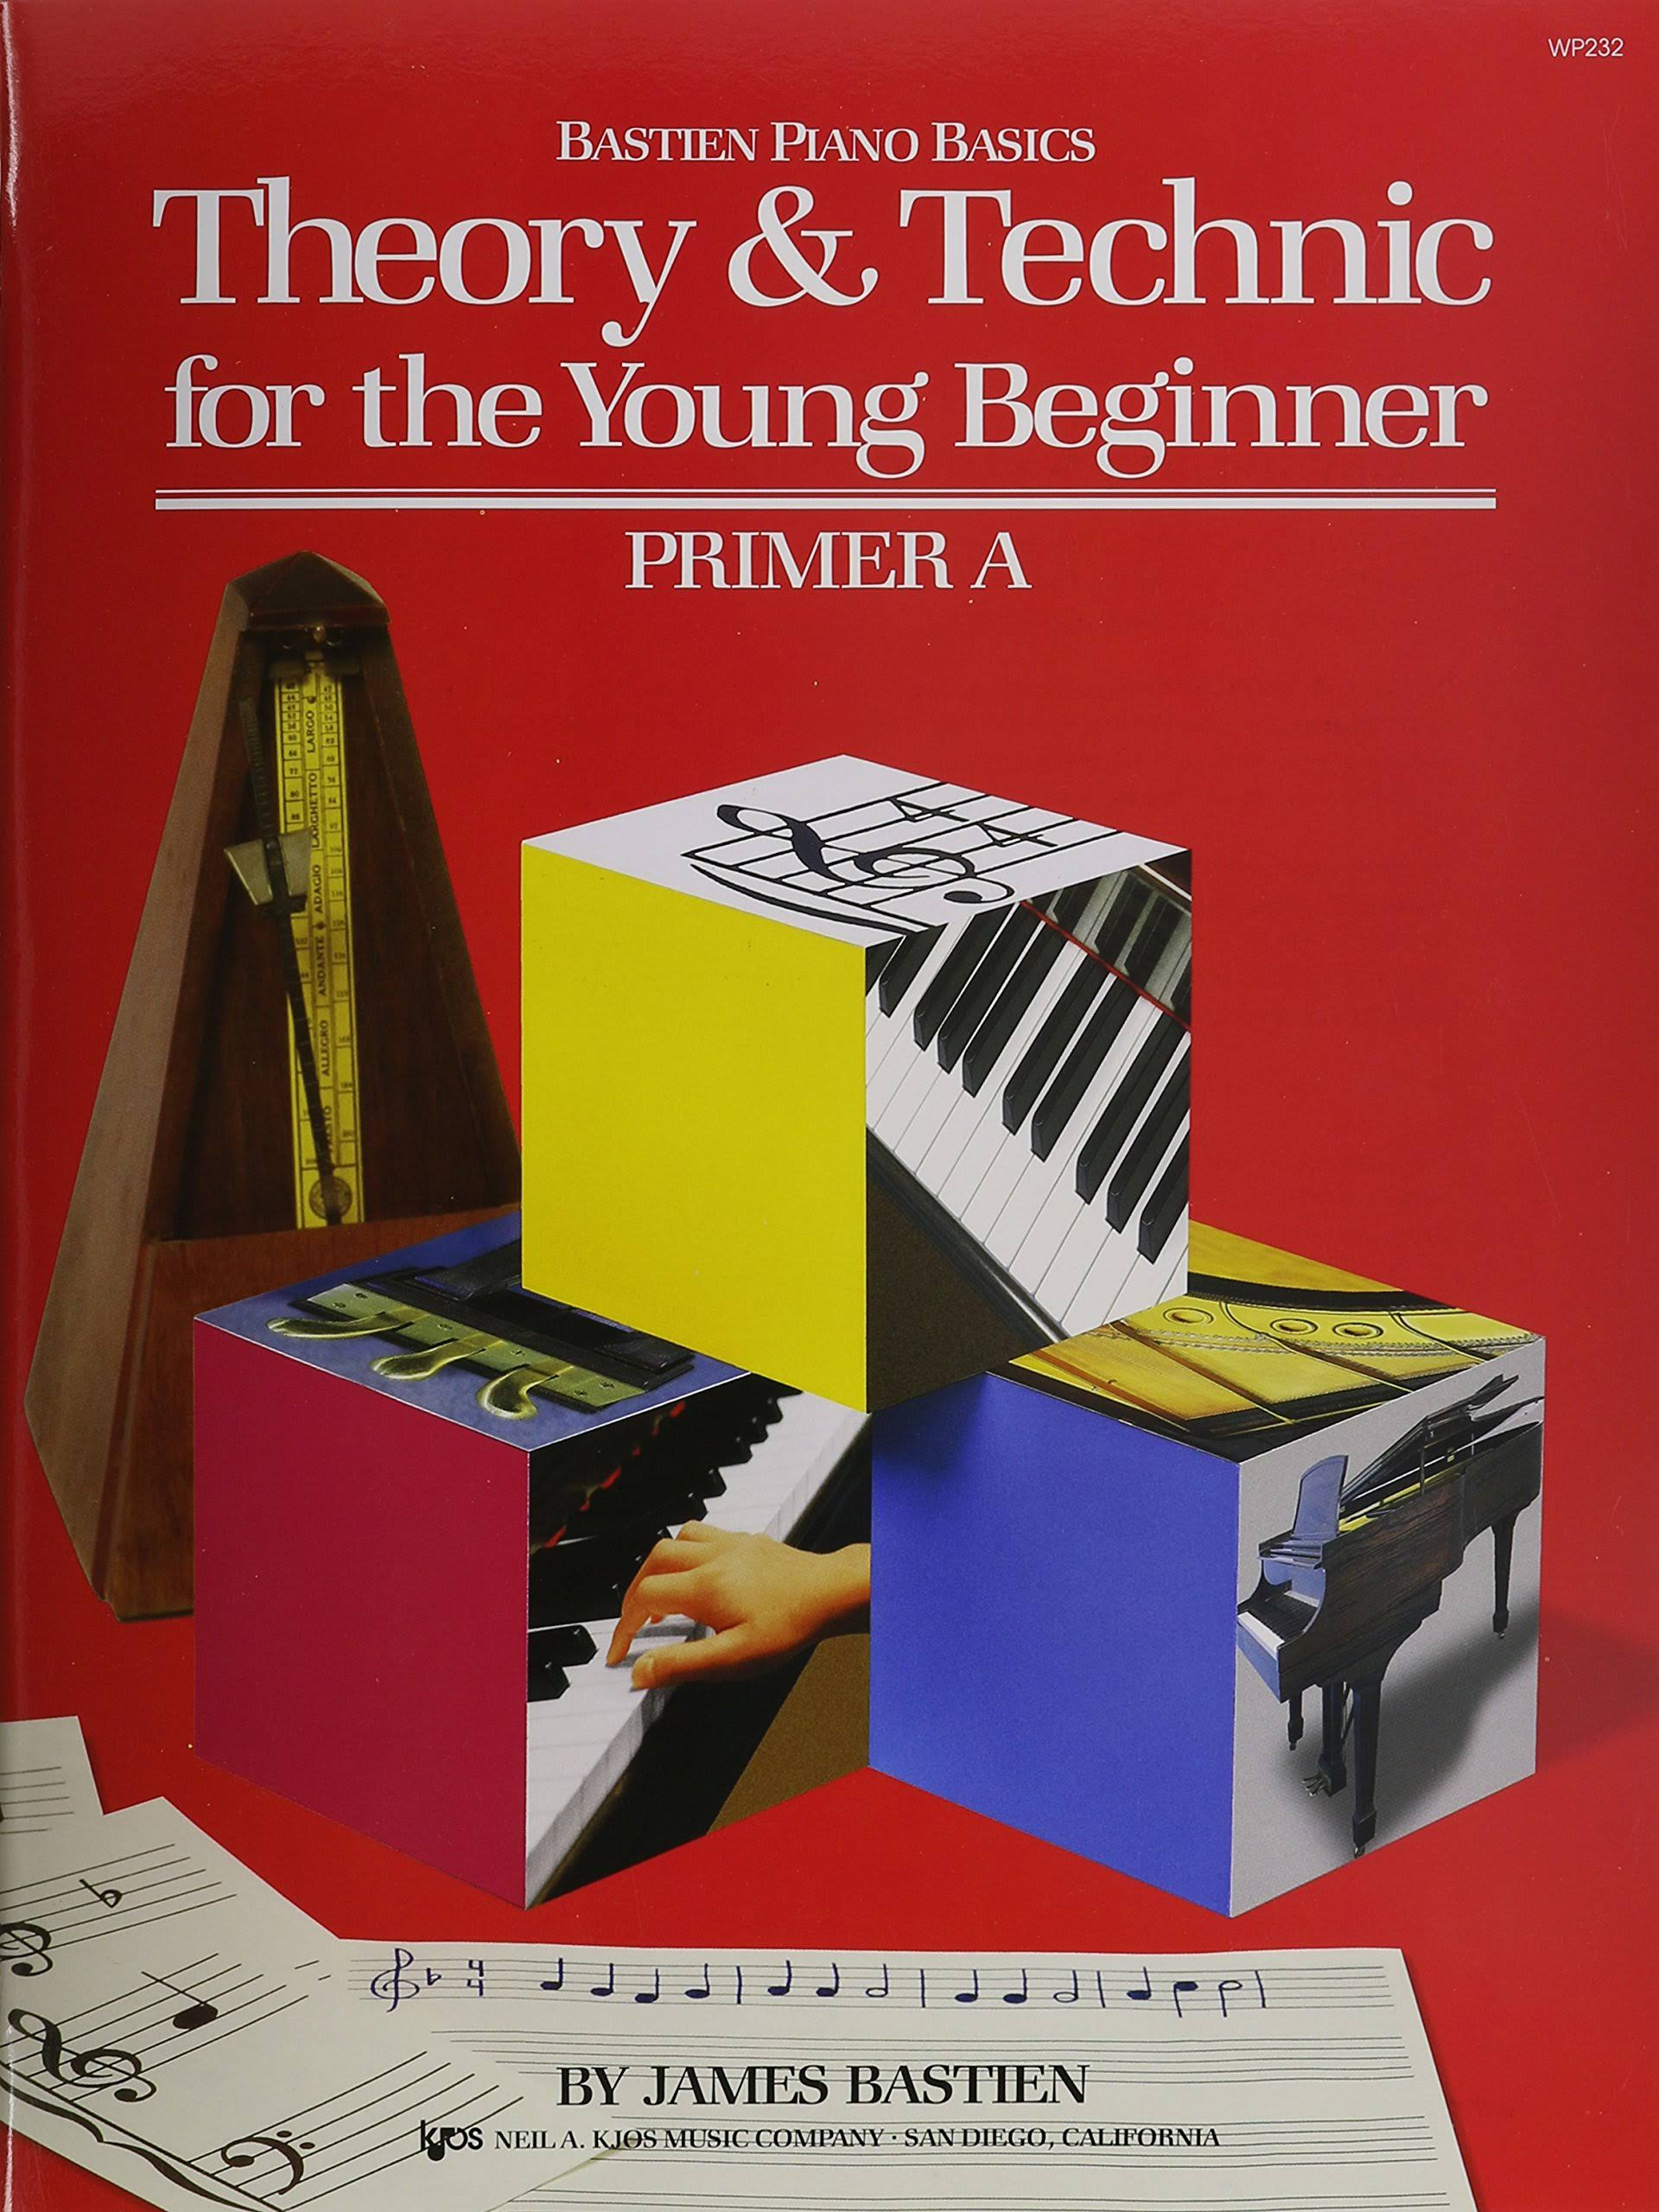 Theory And Technic For The Young Beginner Primer A - James Bastien